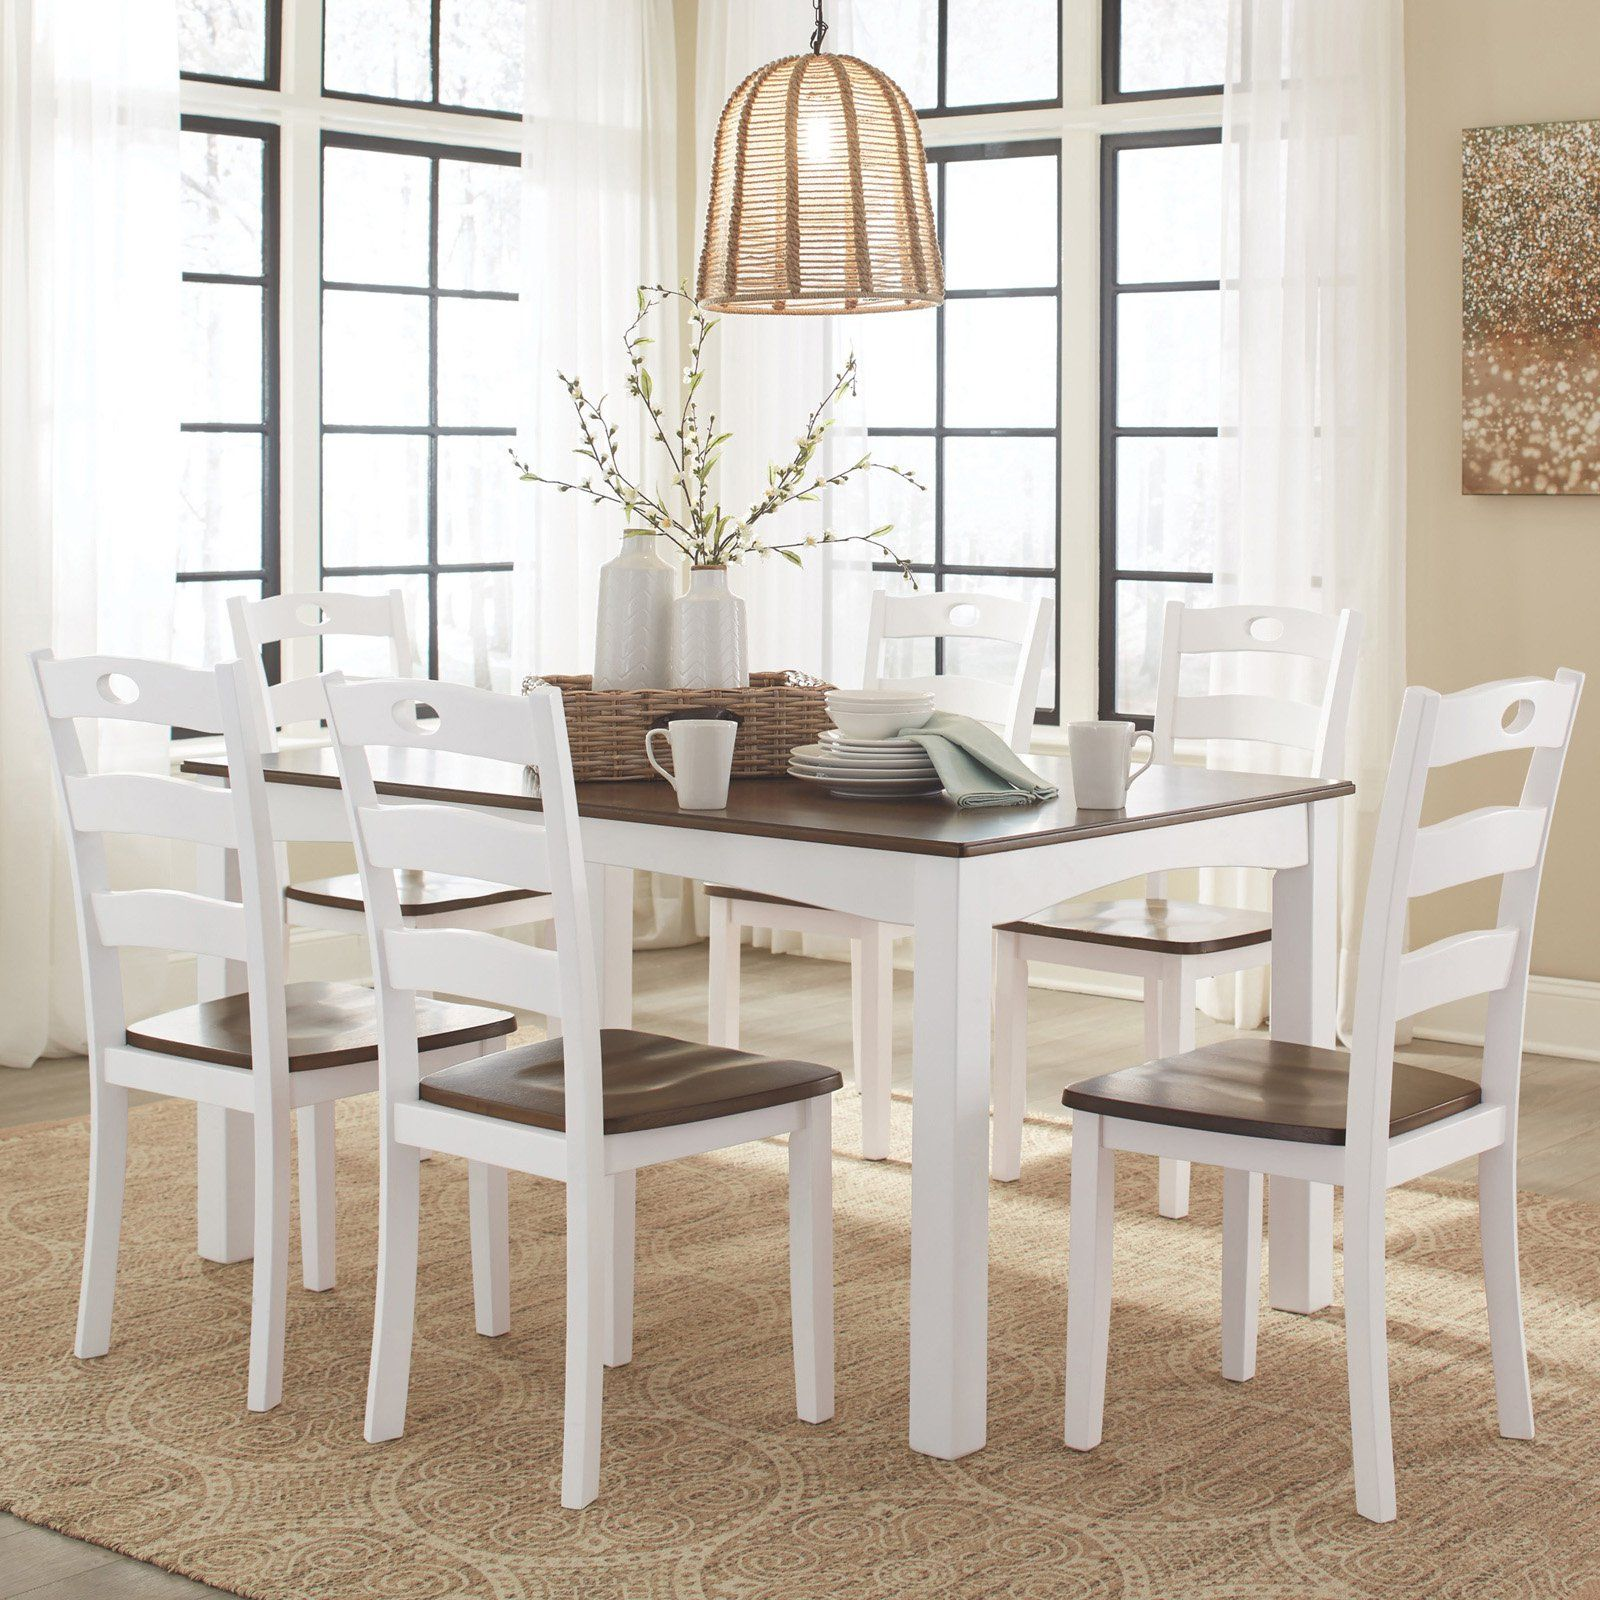 Home In 2020 Dining Room Sets Dining Furniture Sets Dining Table Chairs